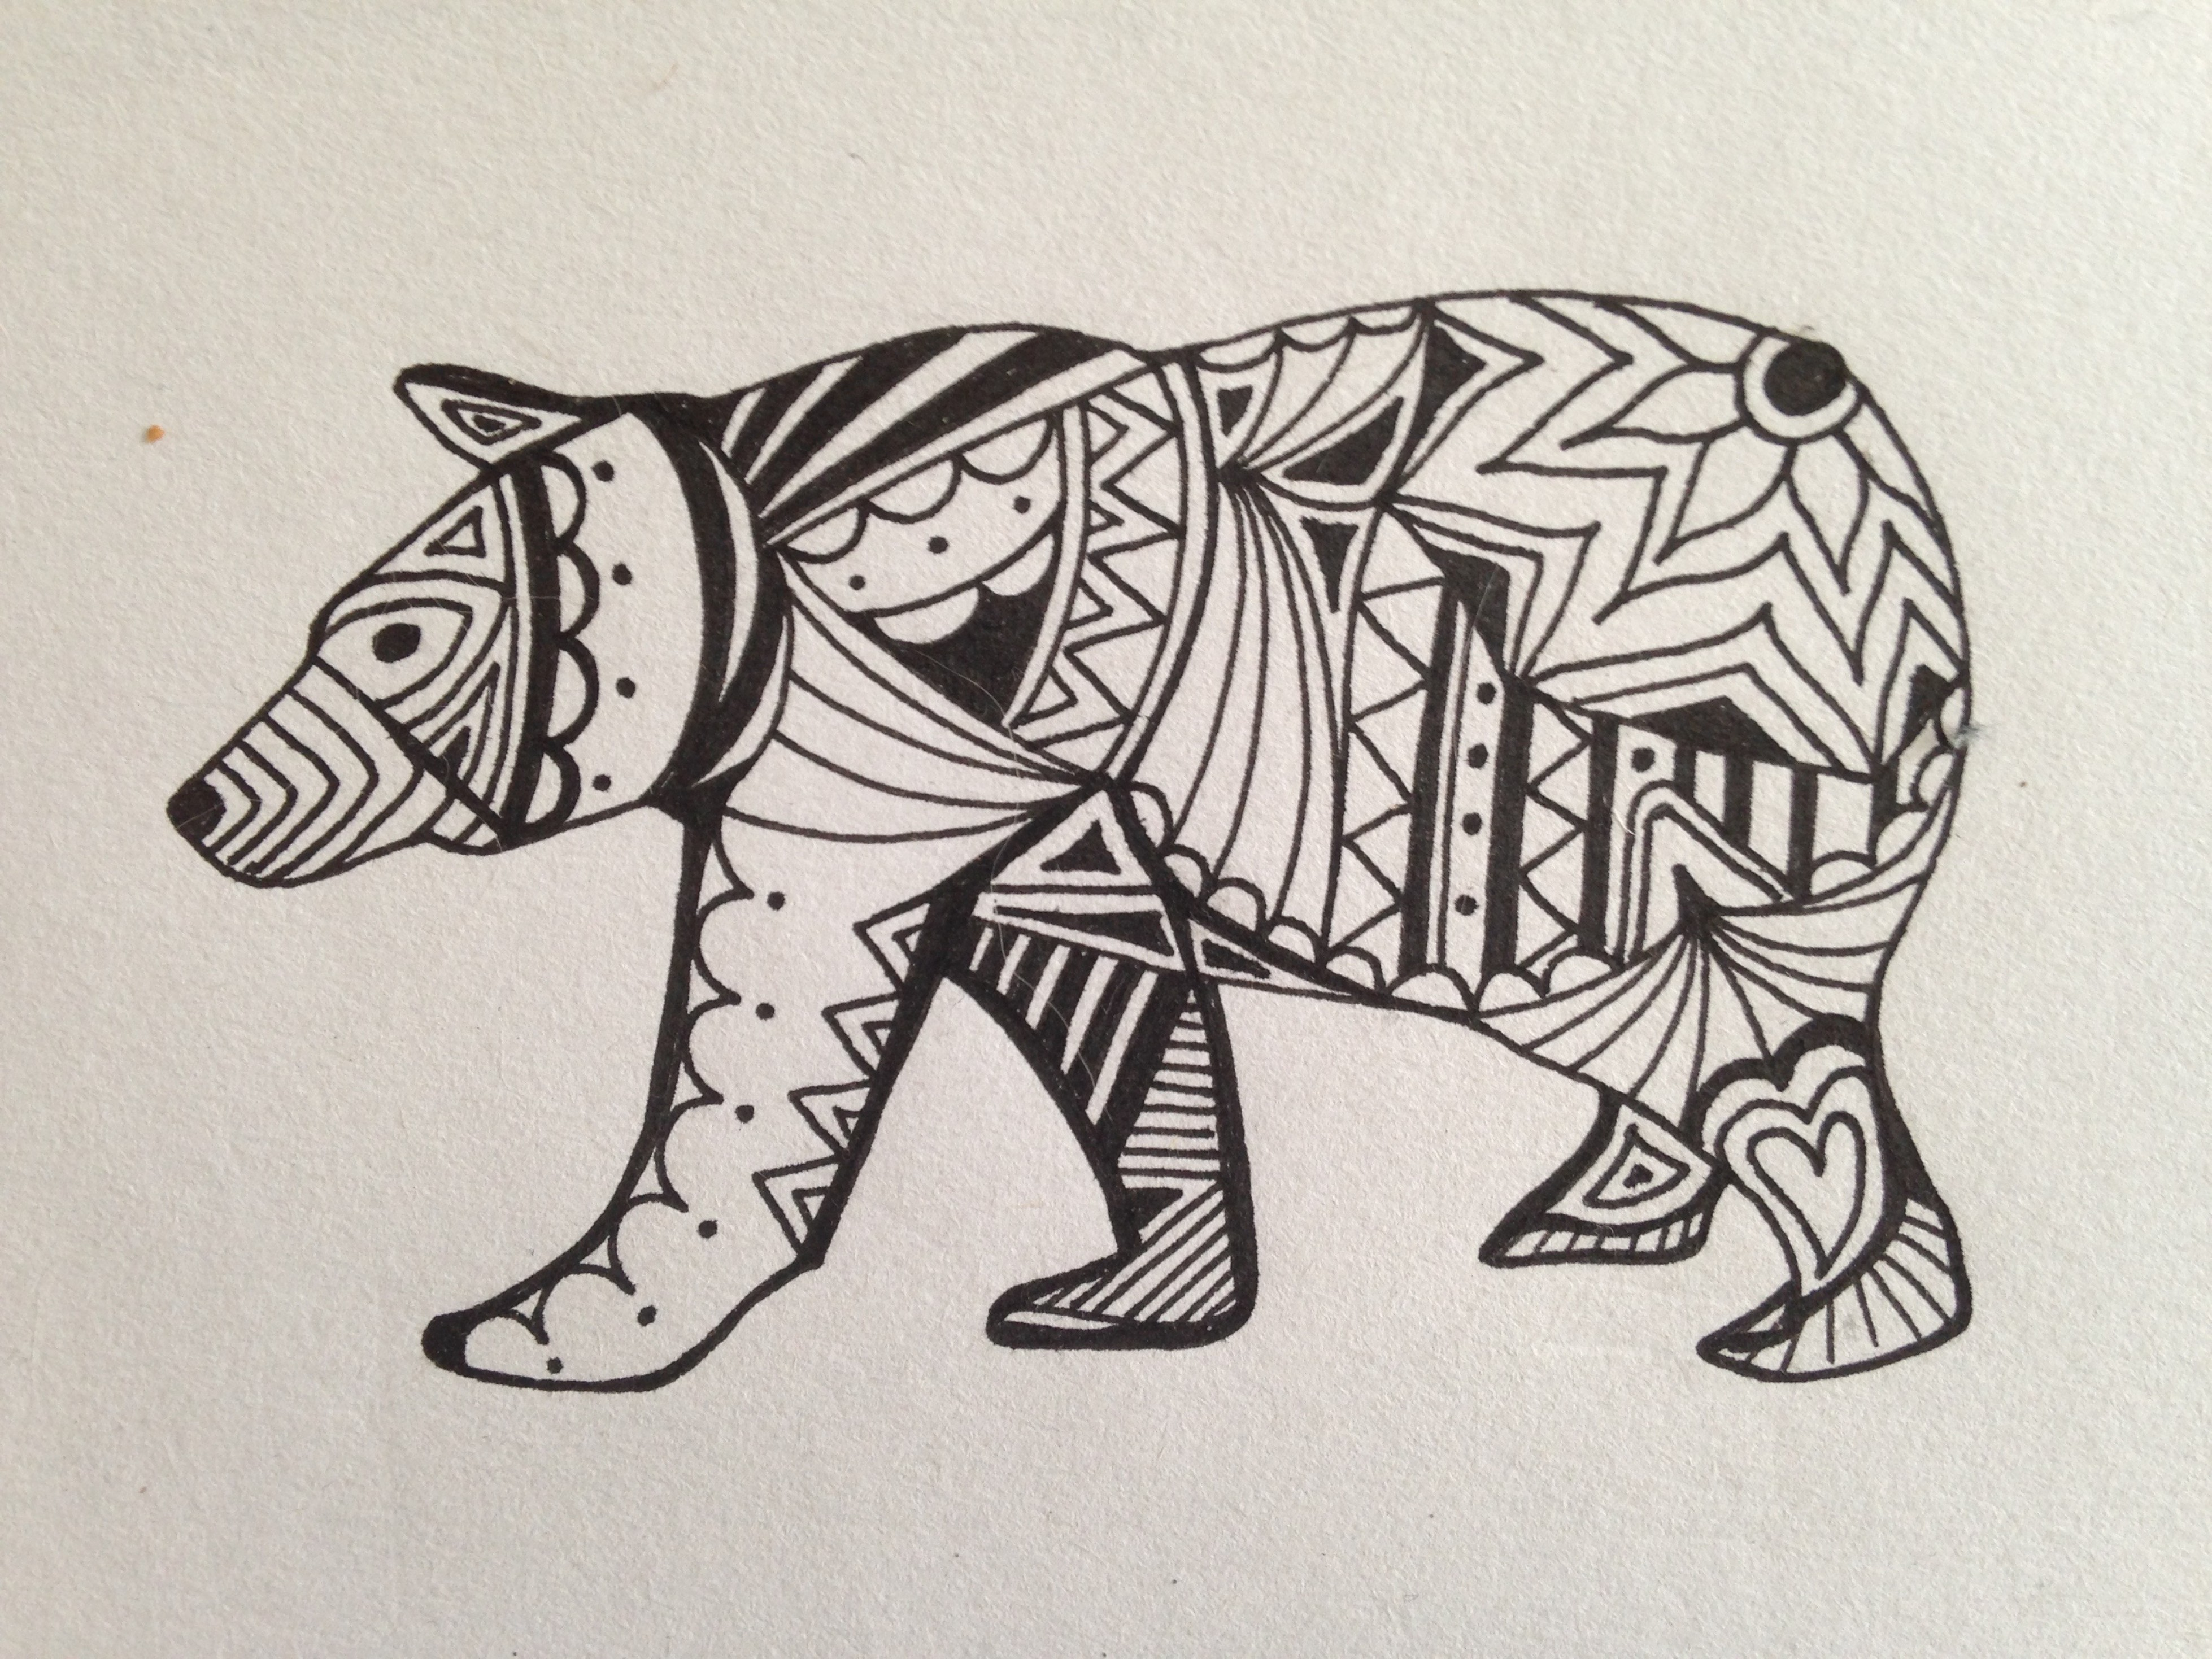 Laser Vector Art: Beautiful Bears For Those Without The Means To Create Vector Artwork